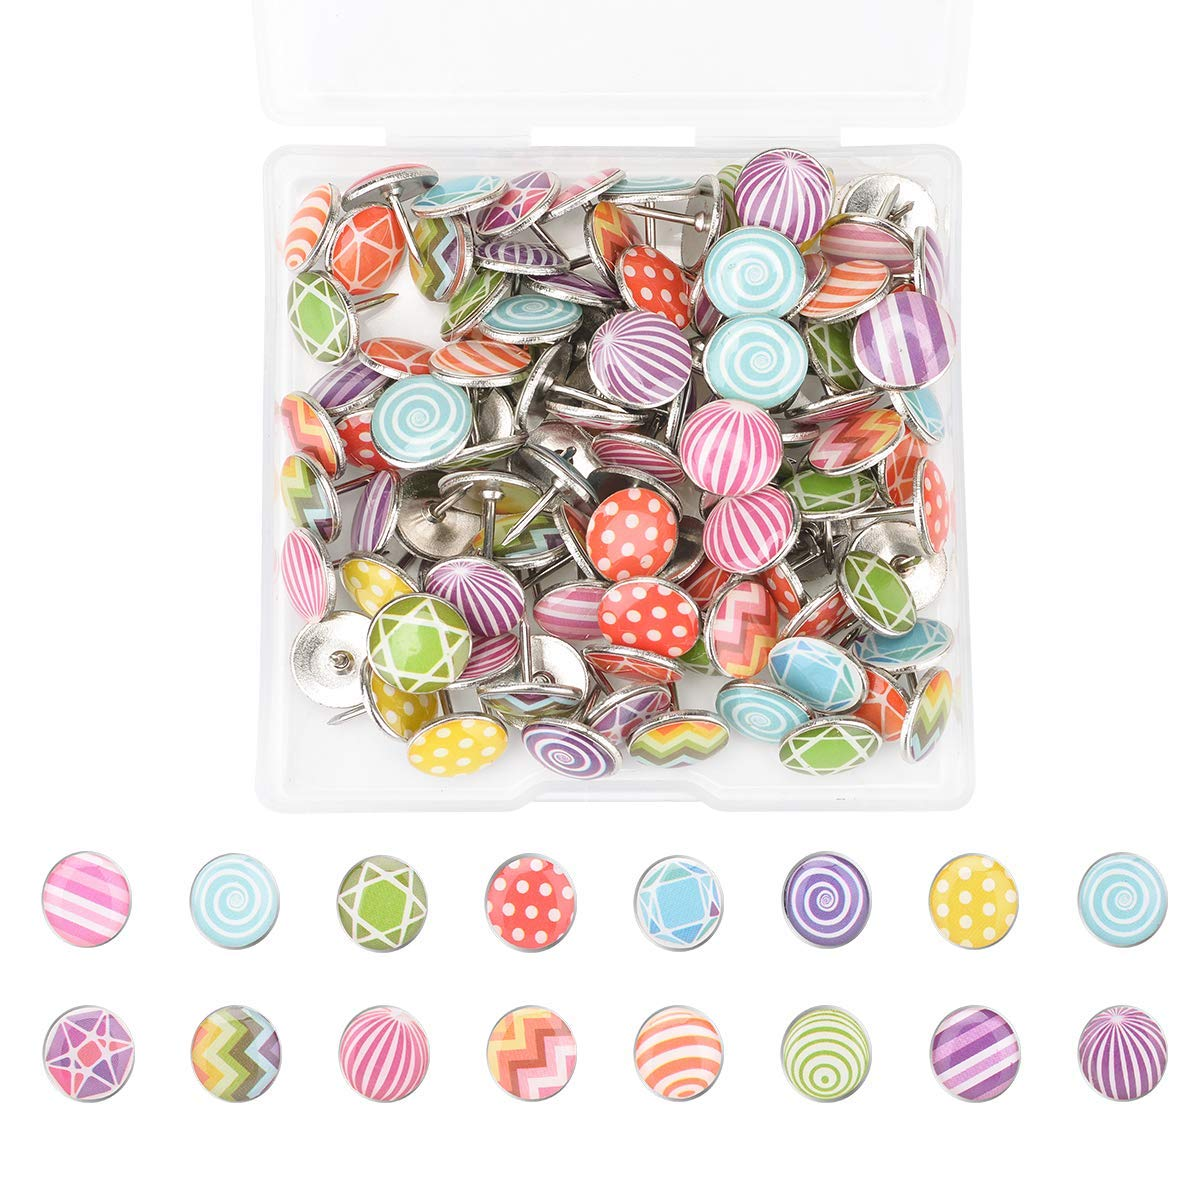 Autrix 120 Pieces Fashion Push Pins Creative Thumb Tacks for Photos Wall, Maps, Bulletin Board or Cork Boards with a Storage Box, 16 Different Patterns